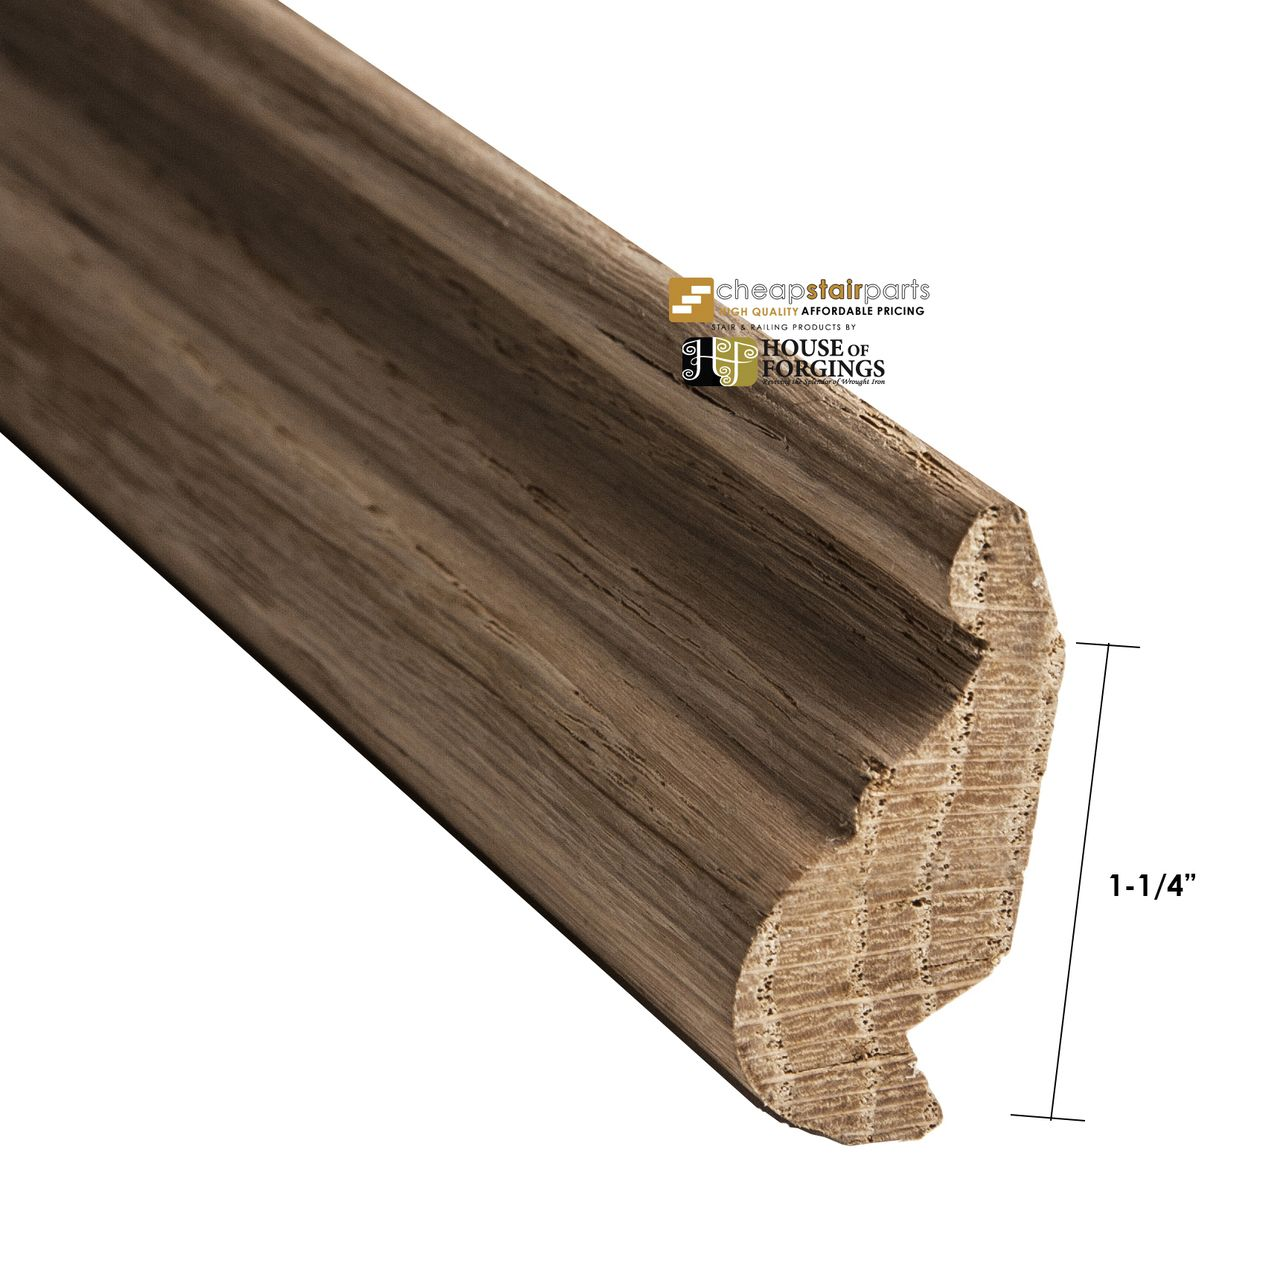 Cheap Stair Parts   PM 2   Offset Panel Moulding, $5.20 (http: